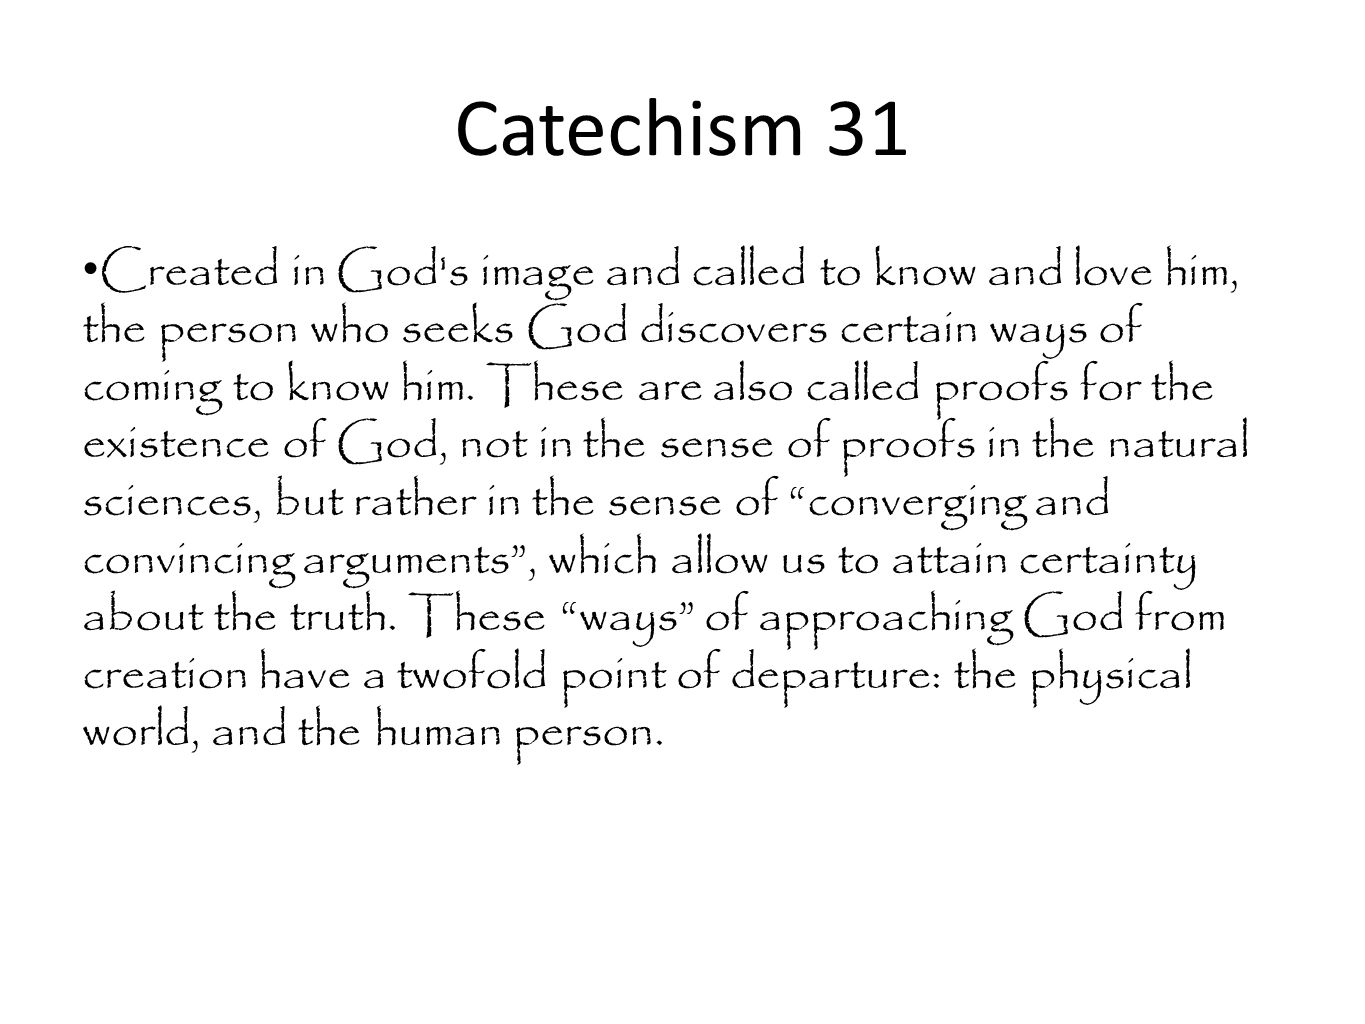 Catechism 31 Created in God's image and called to know and love him, the person who seeks God discovers certain ways of coming to know him. These are